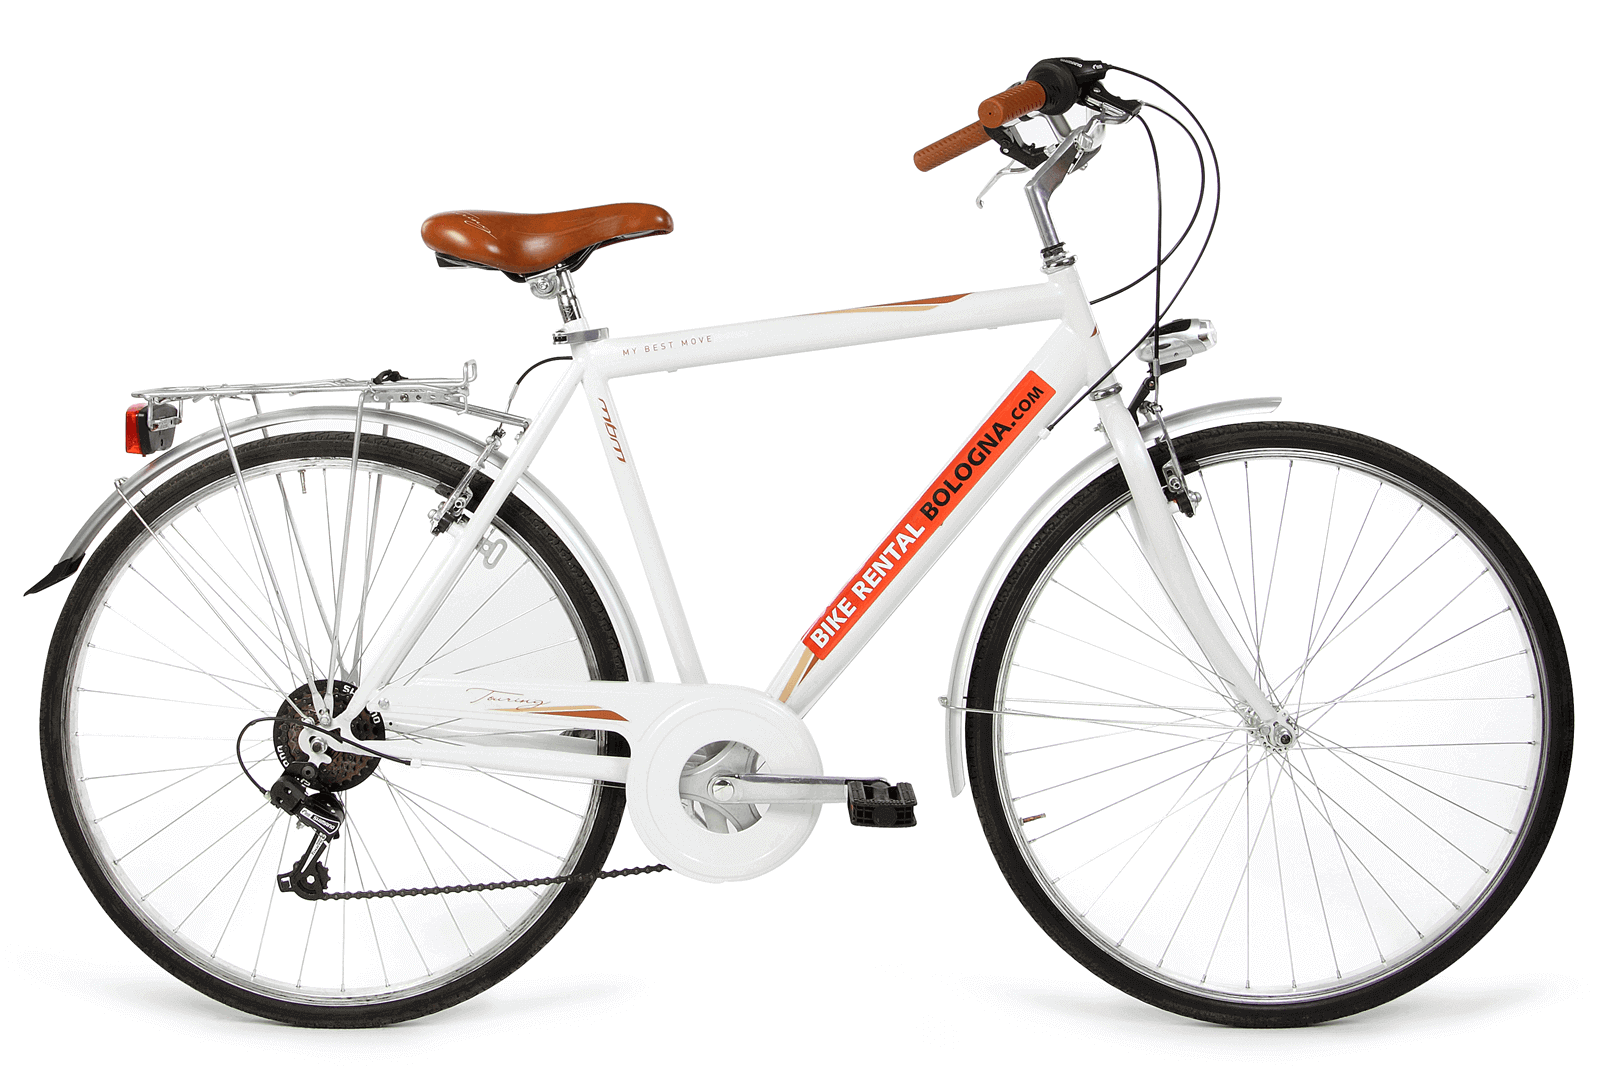 city-bike standard, male version